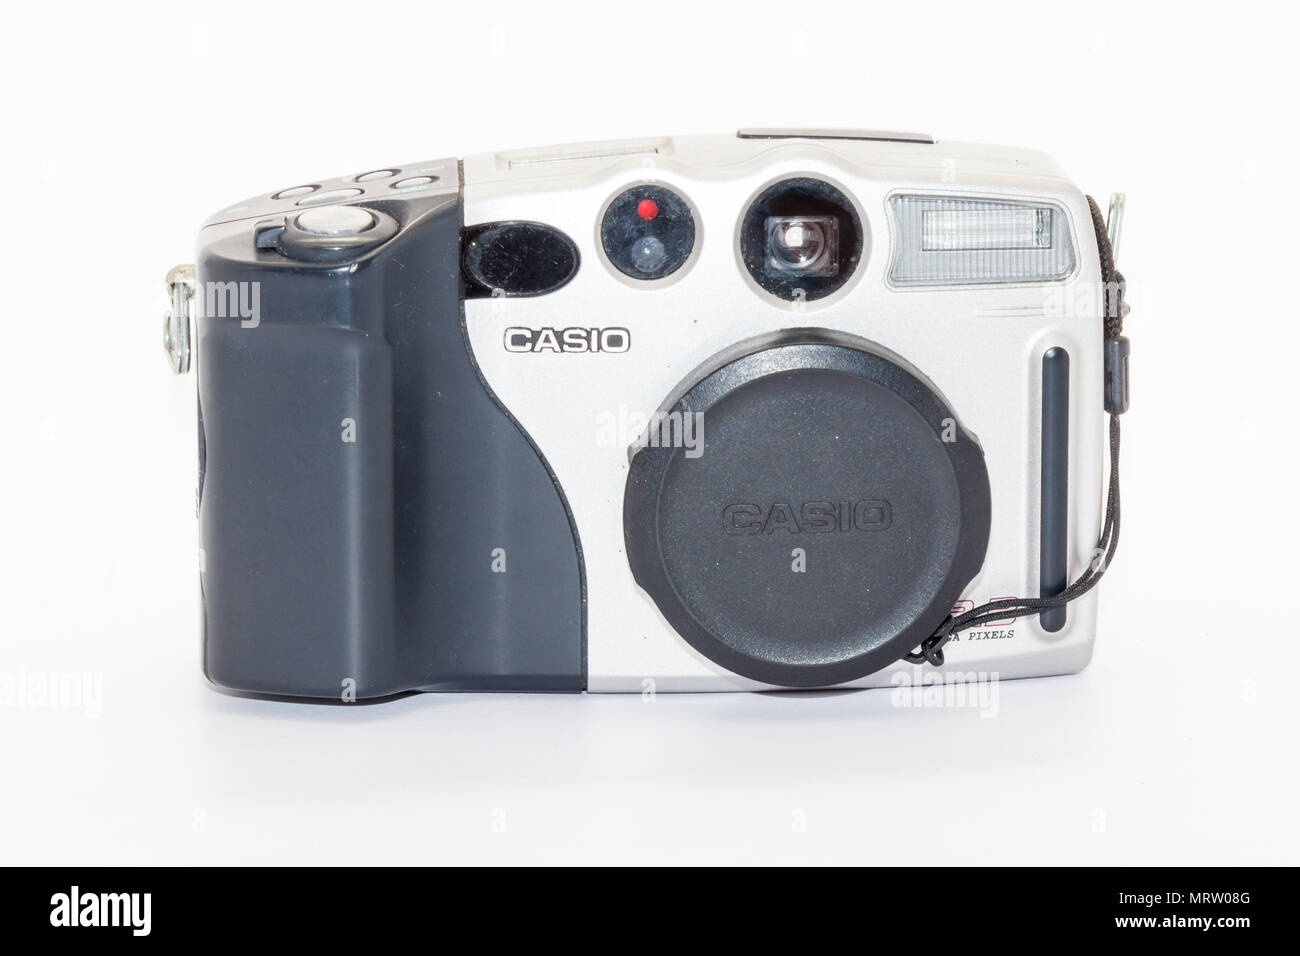 Phuket, Thailand-20th May 2018: An early Casio digital camera. QV-3000EX, circa 2001. This was the frst 3 megapixel camera on the market. - Stock Image